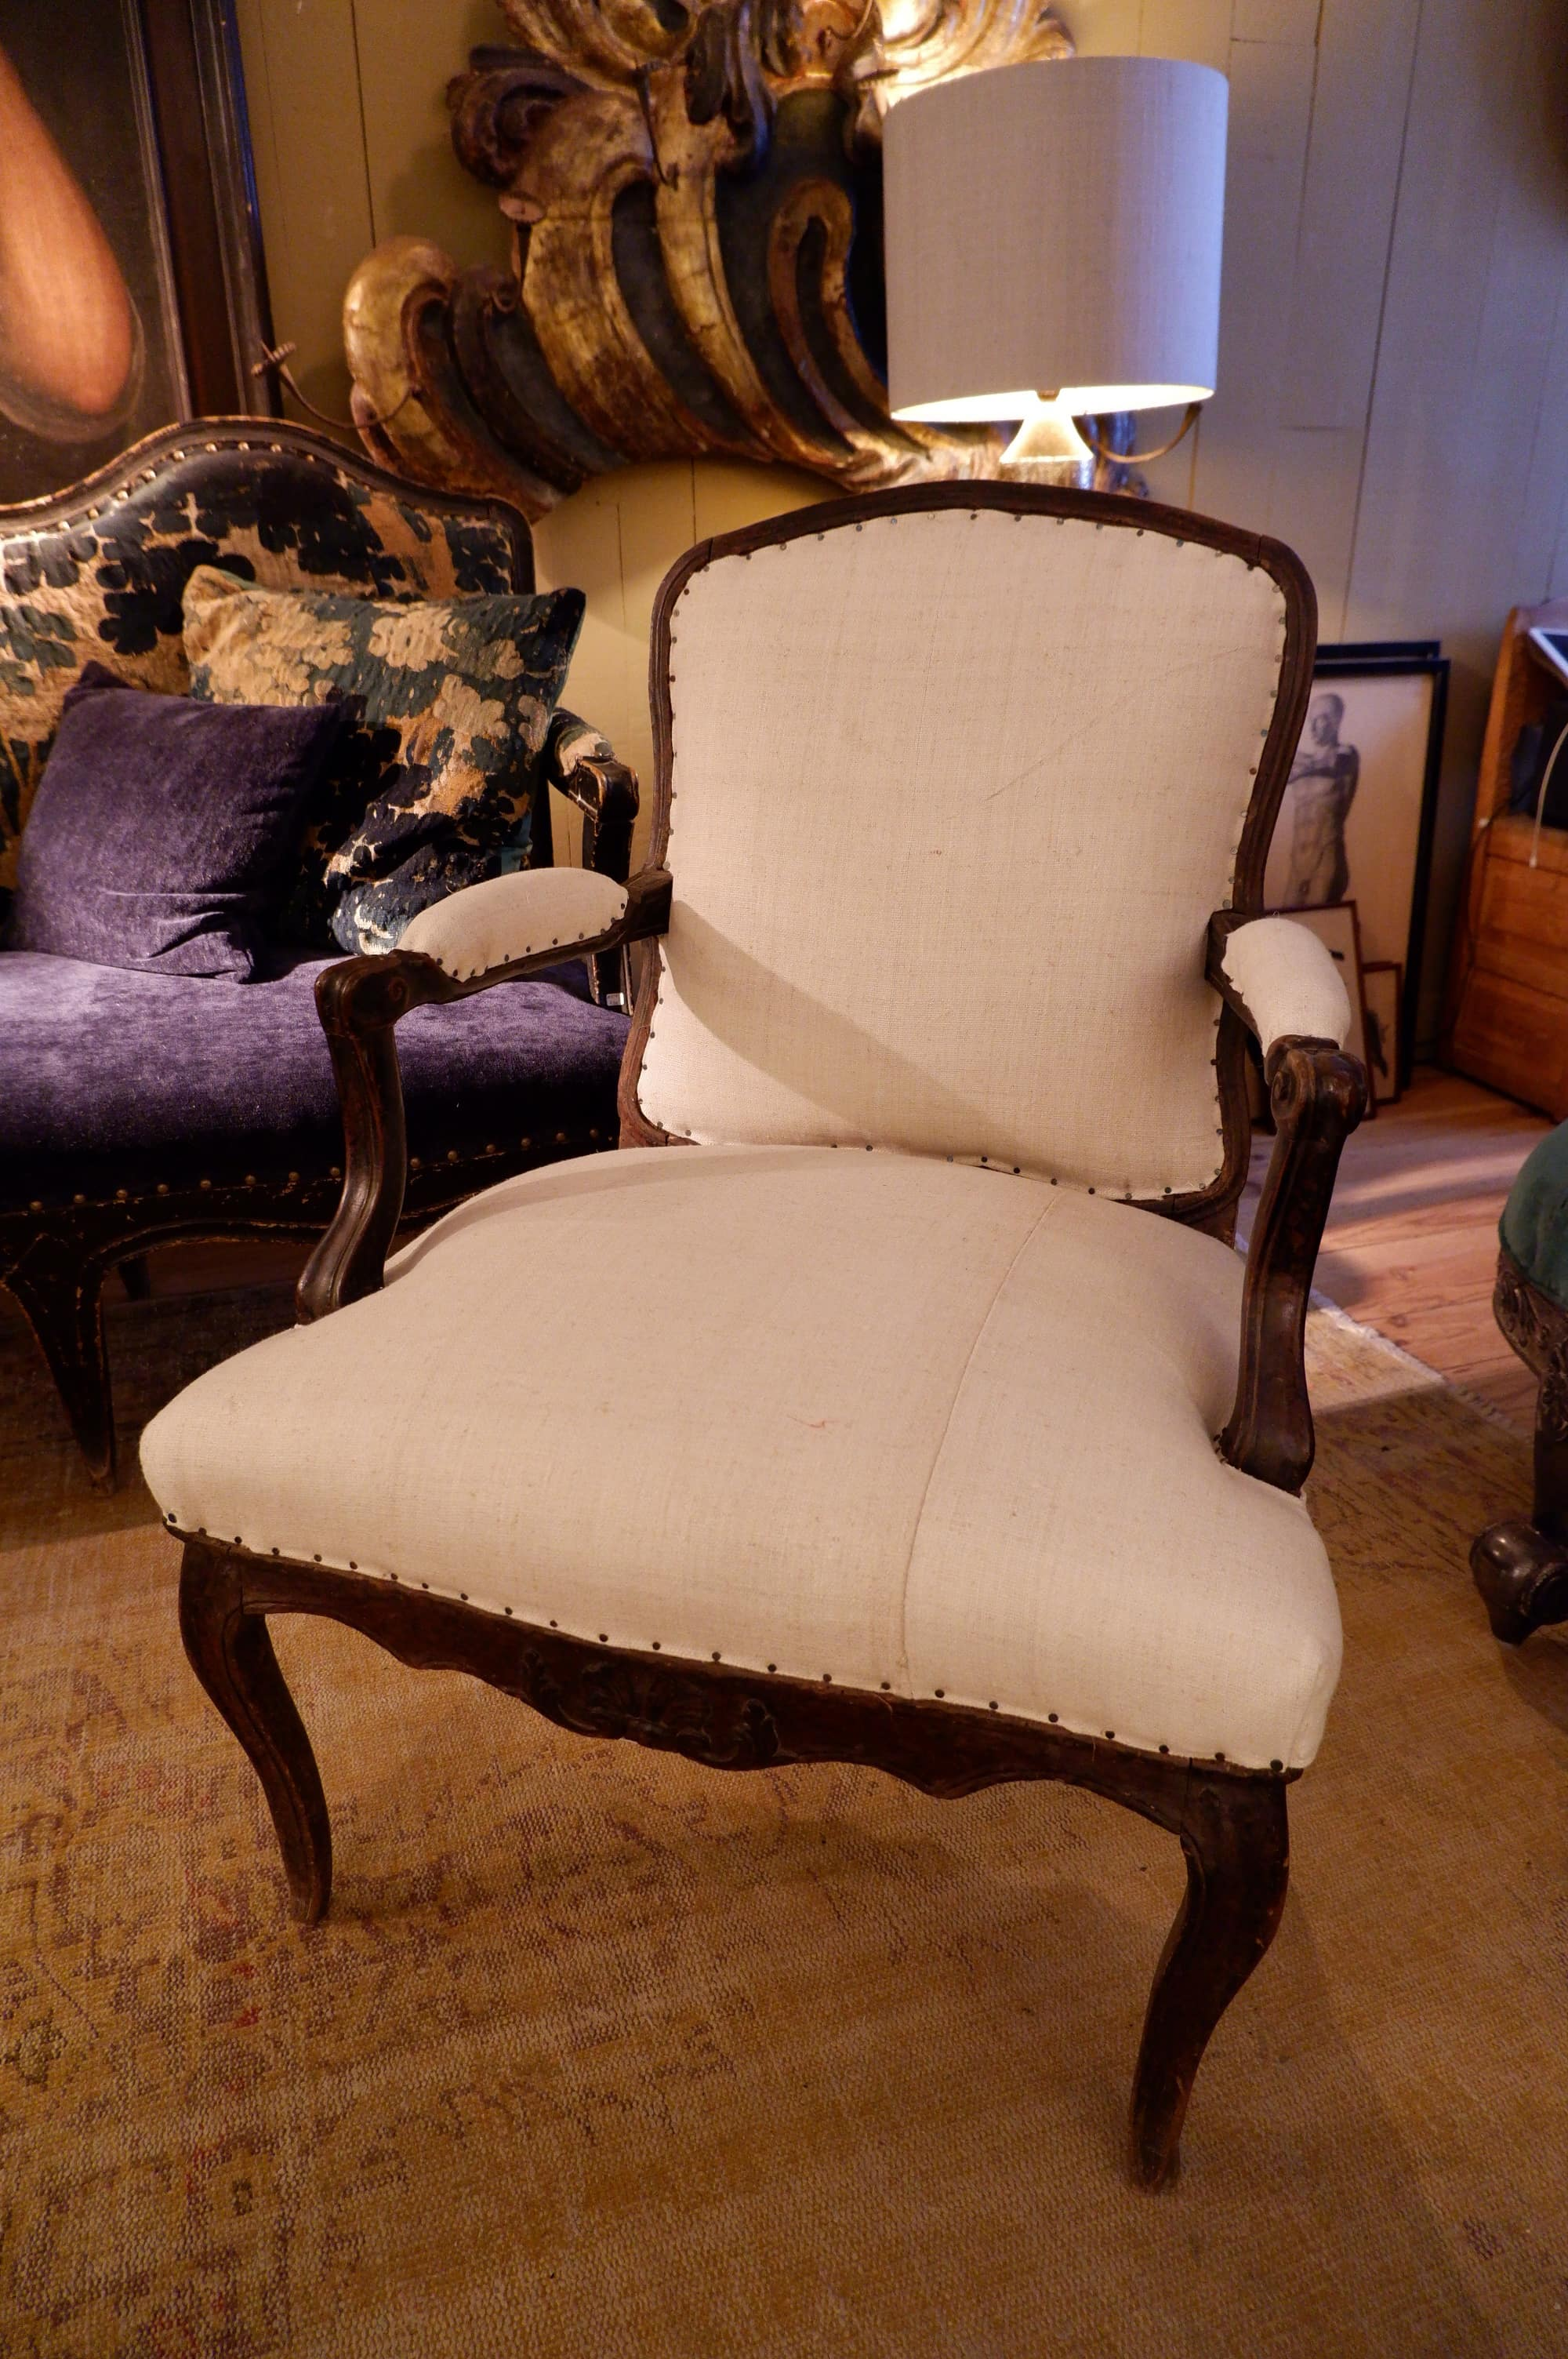 Elegant Louis XV armchair with flat backrest and black patina - France ca.1720